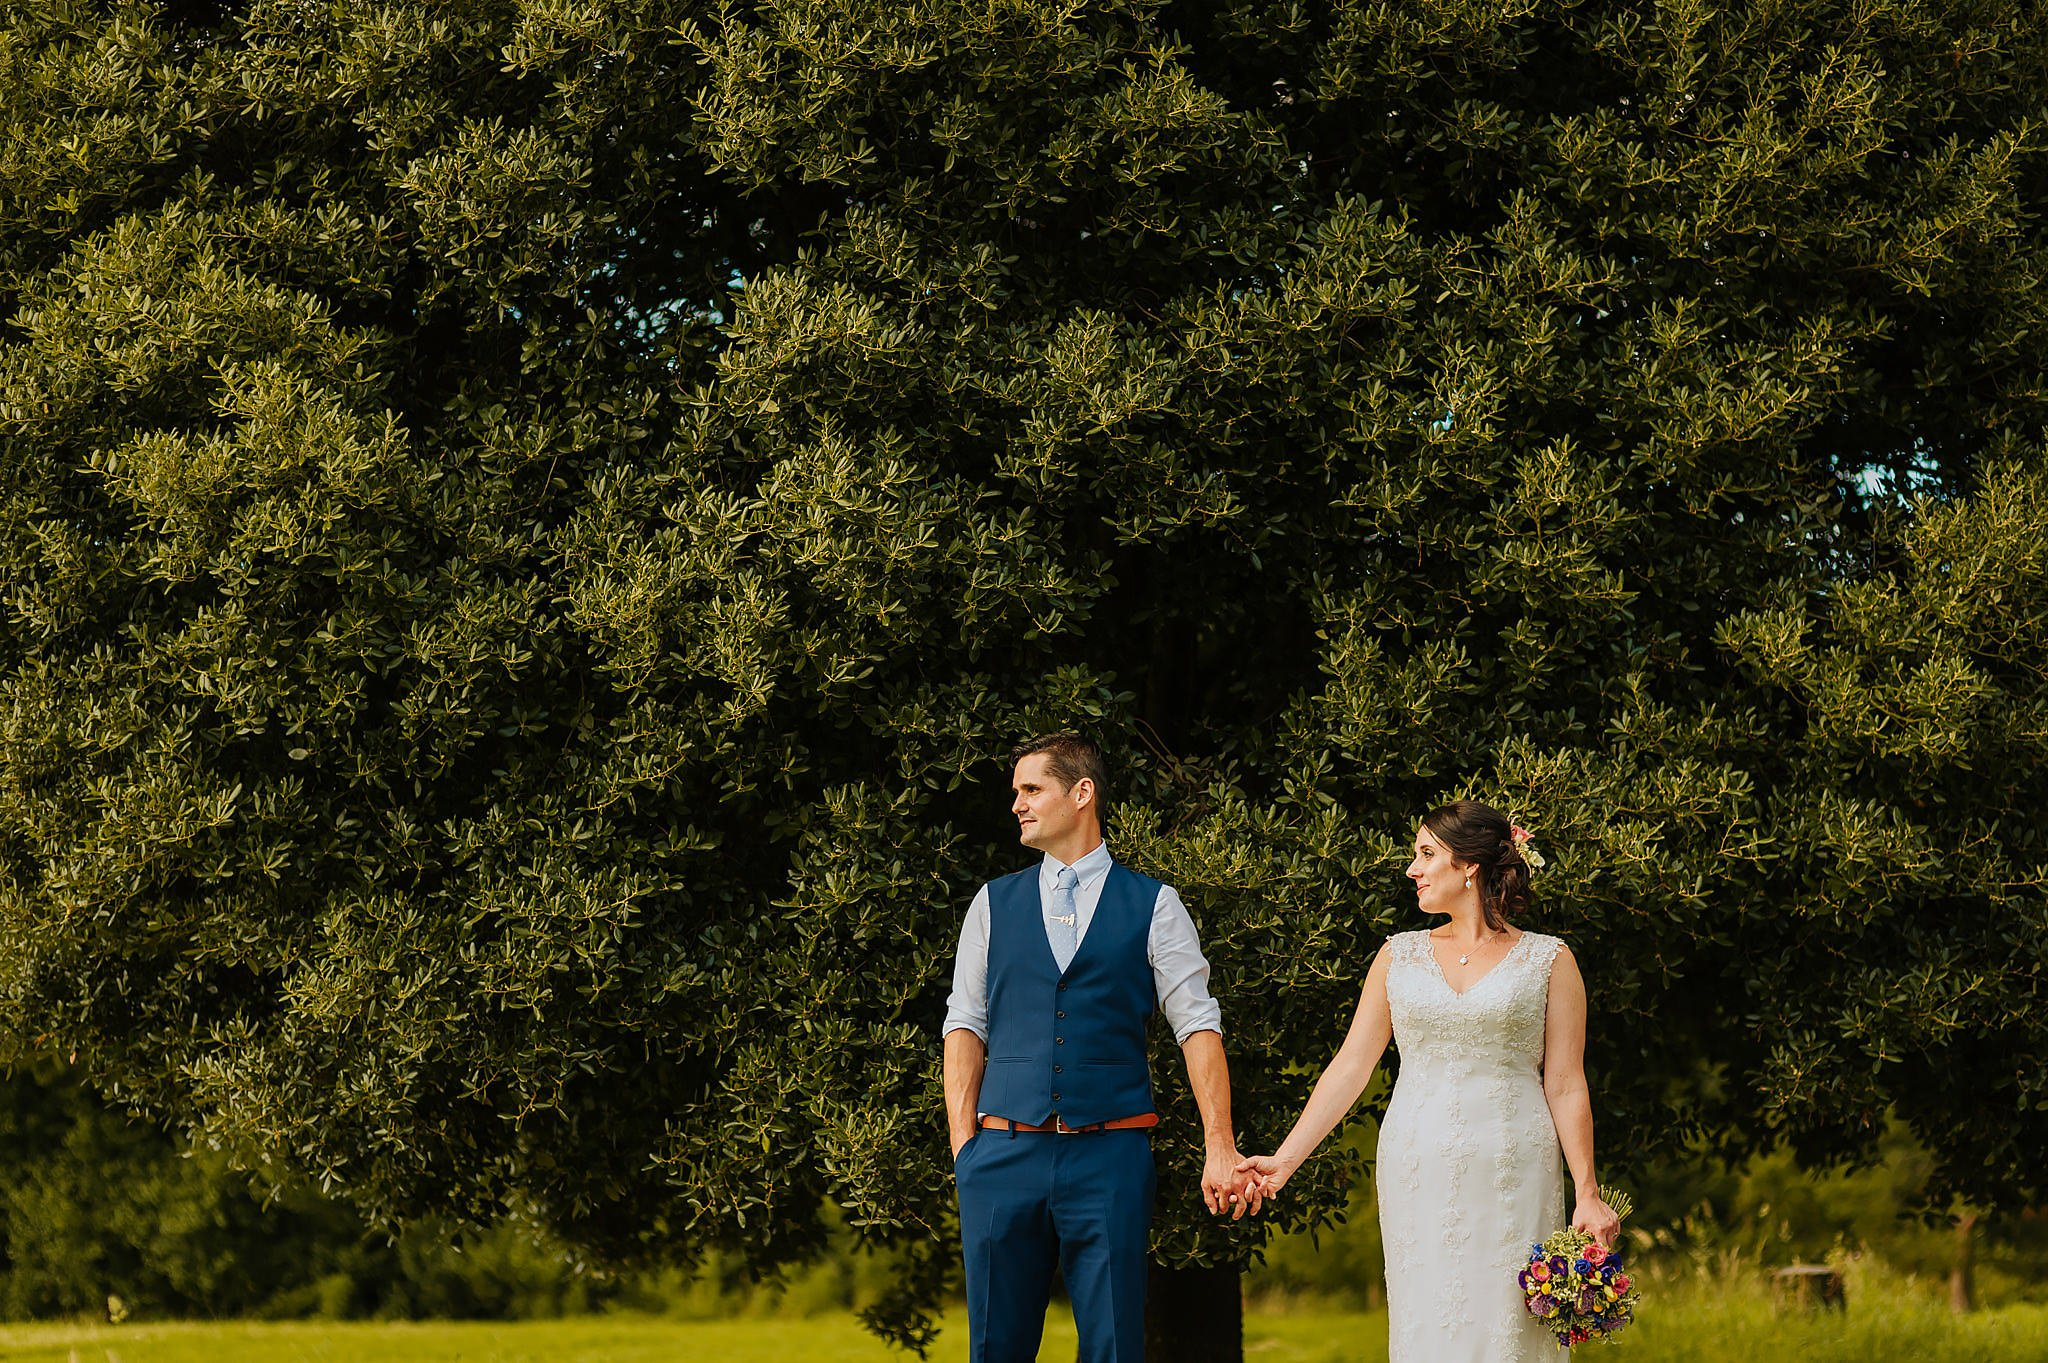 Wedding photography at Hellens Manor in Herefordshire, West Midlands | Shelley + Ian 114